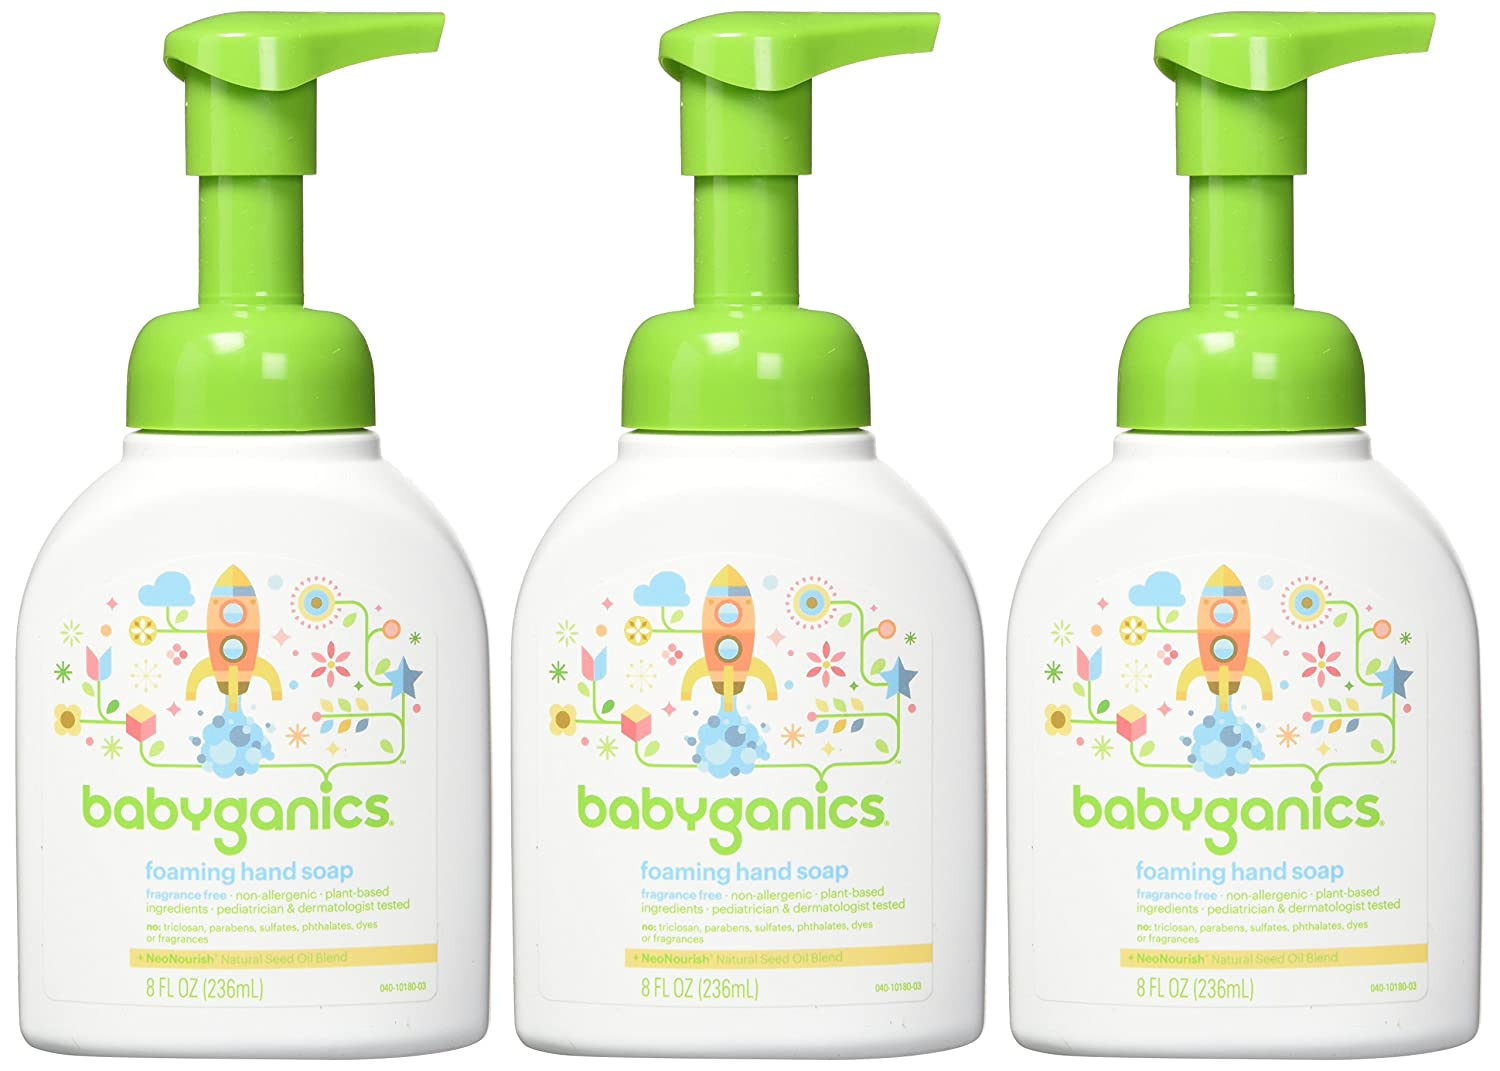 Babyganics Foaming Hand Soap 8 -Ounce Chamomile Verbena (Pack of 3)